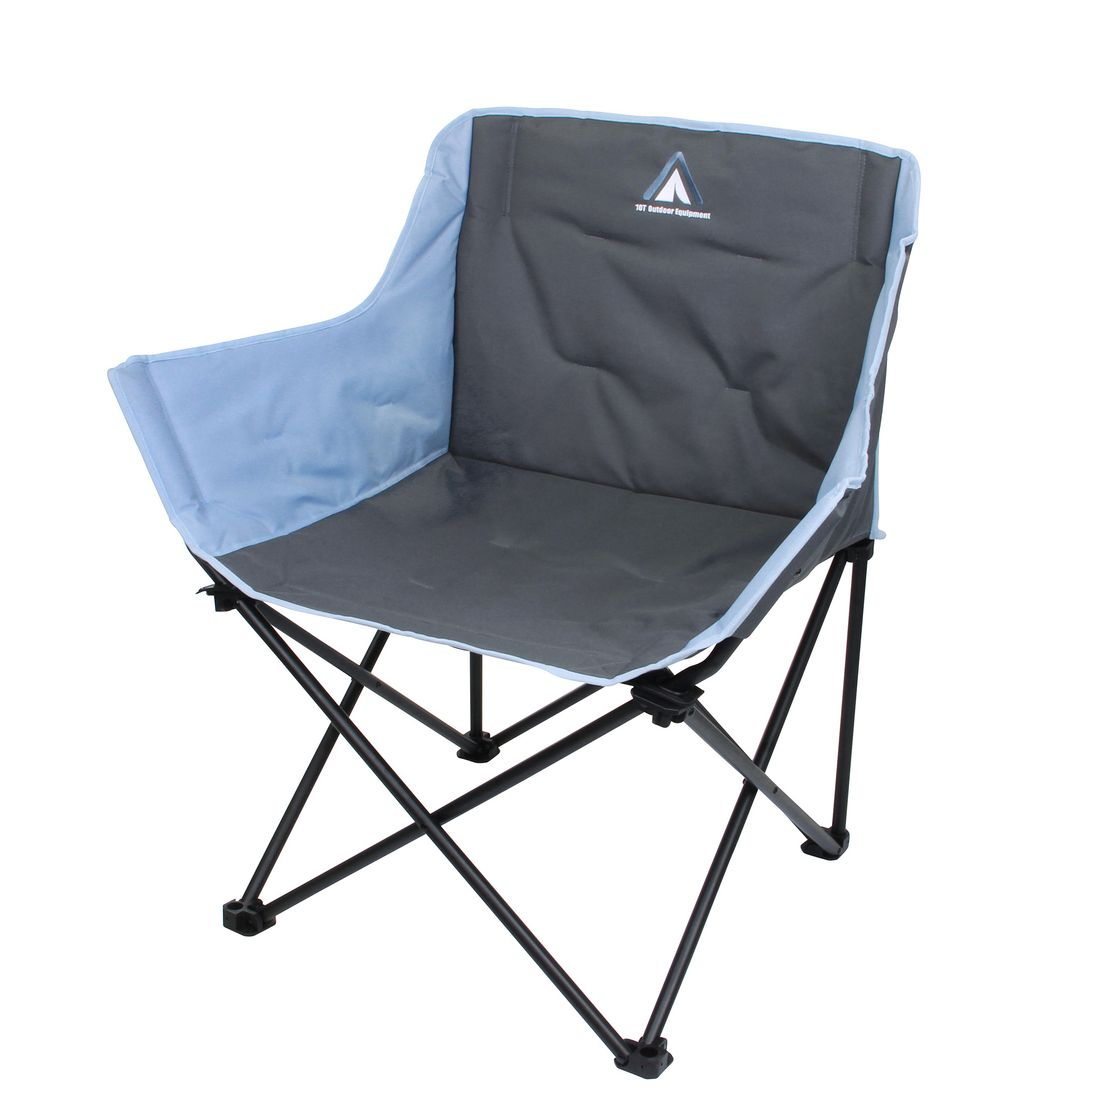 10t Camping Chair Jace Arona Xxl Folding Chair Up To 130 Kg Chair With Cup Holder Side Pocket Outdoor Furniture Chairs Collapsible Chairs